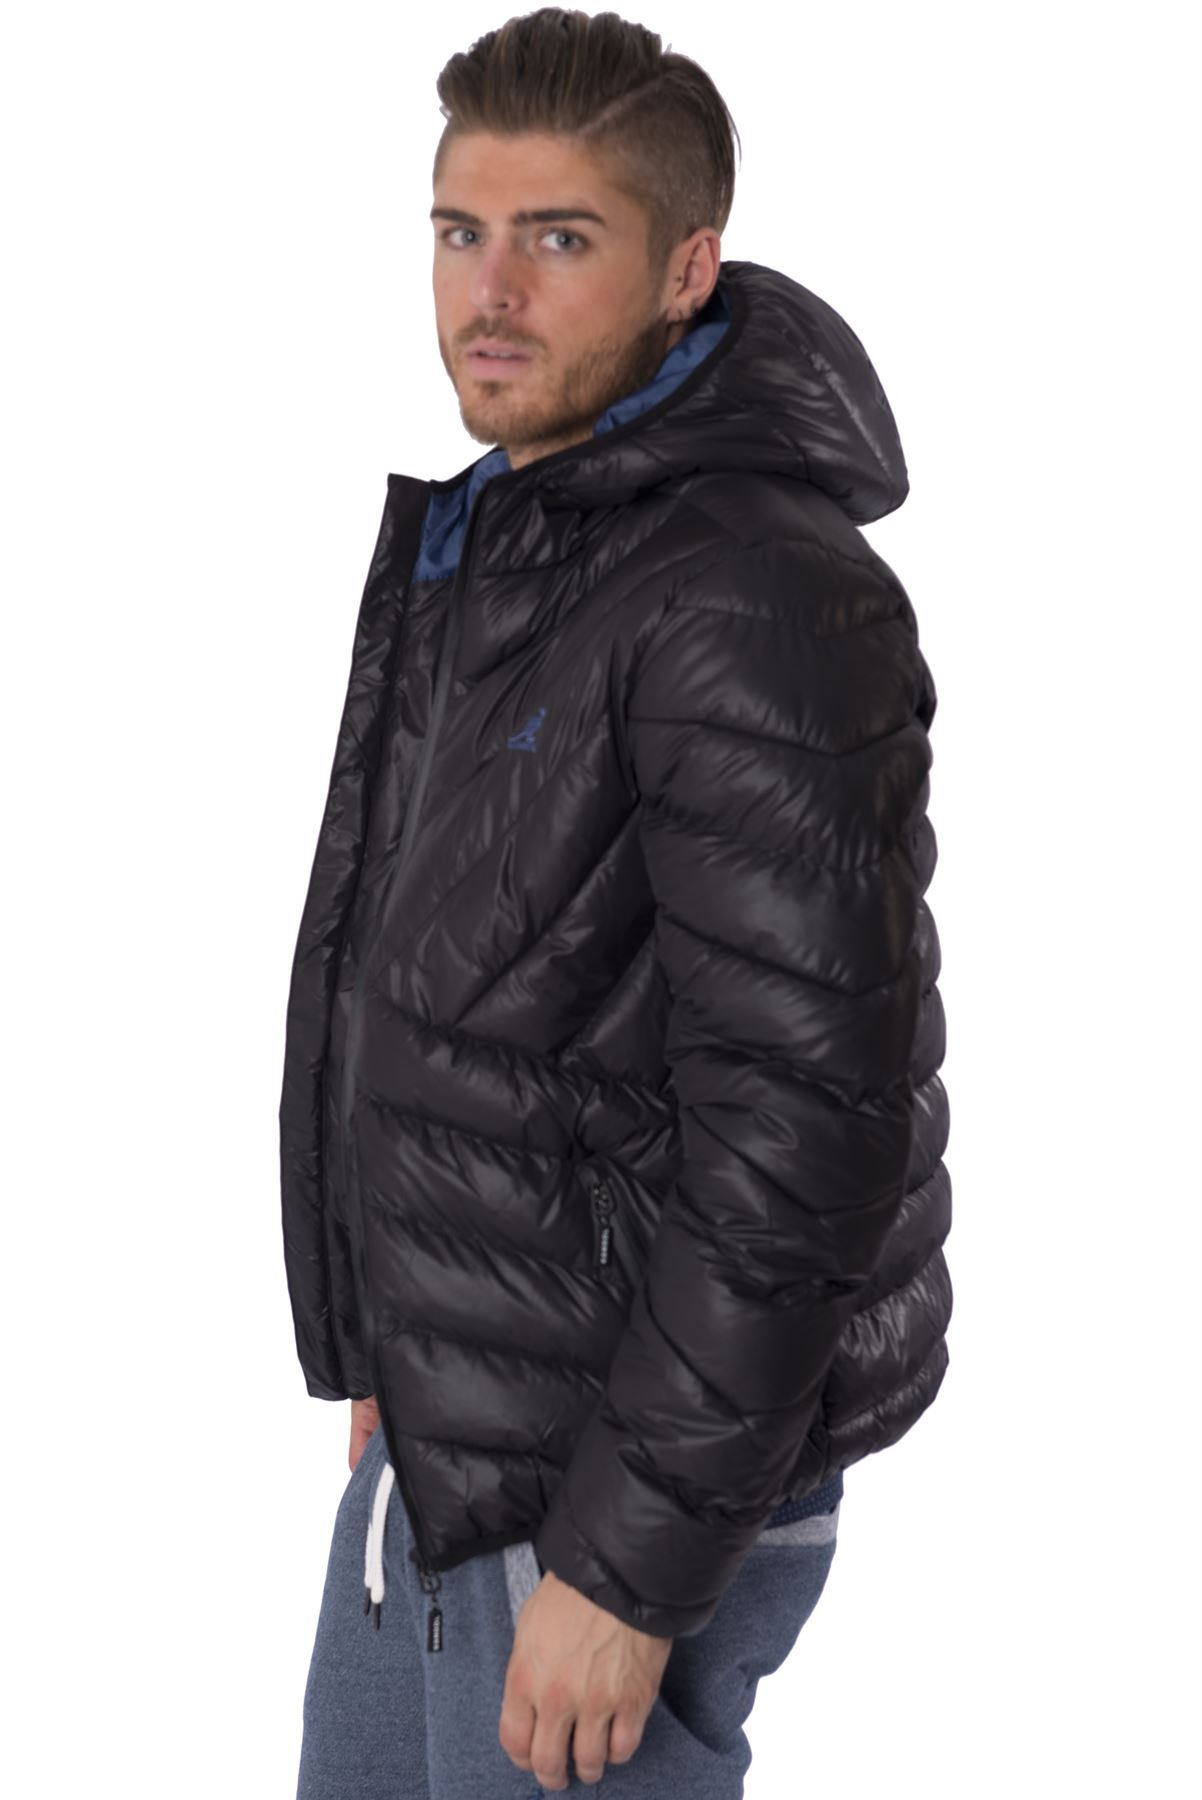 Kangol Mens Quilted Puffer Zip up Jacket Streetwear Hooded